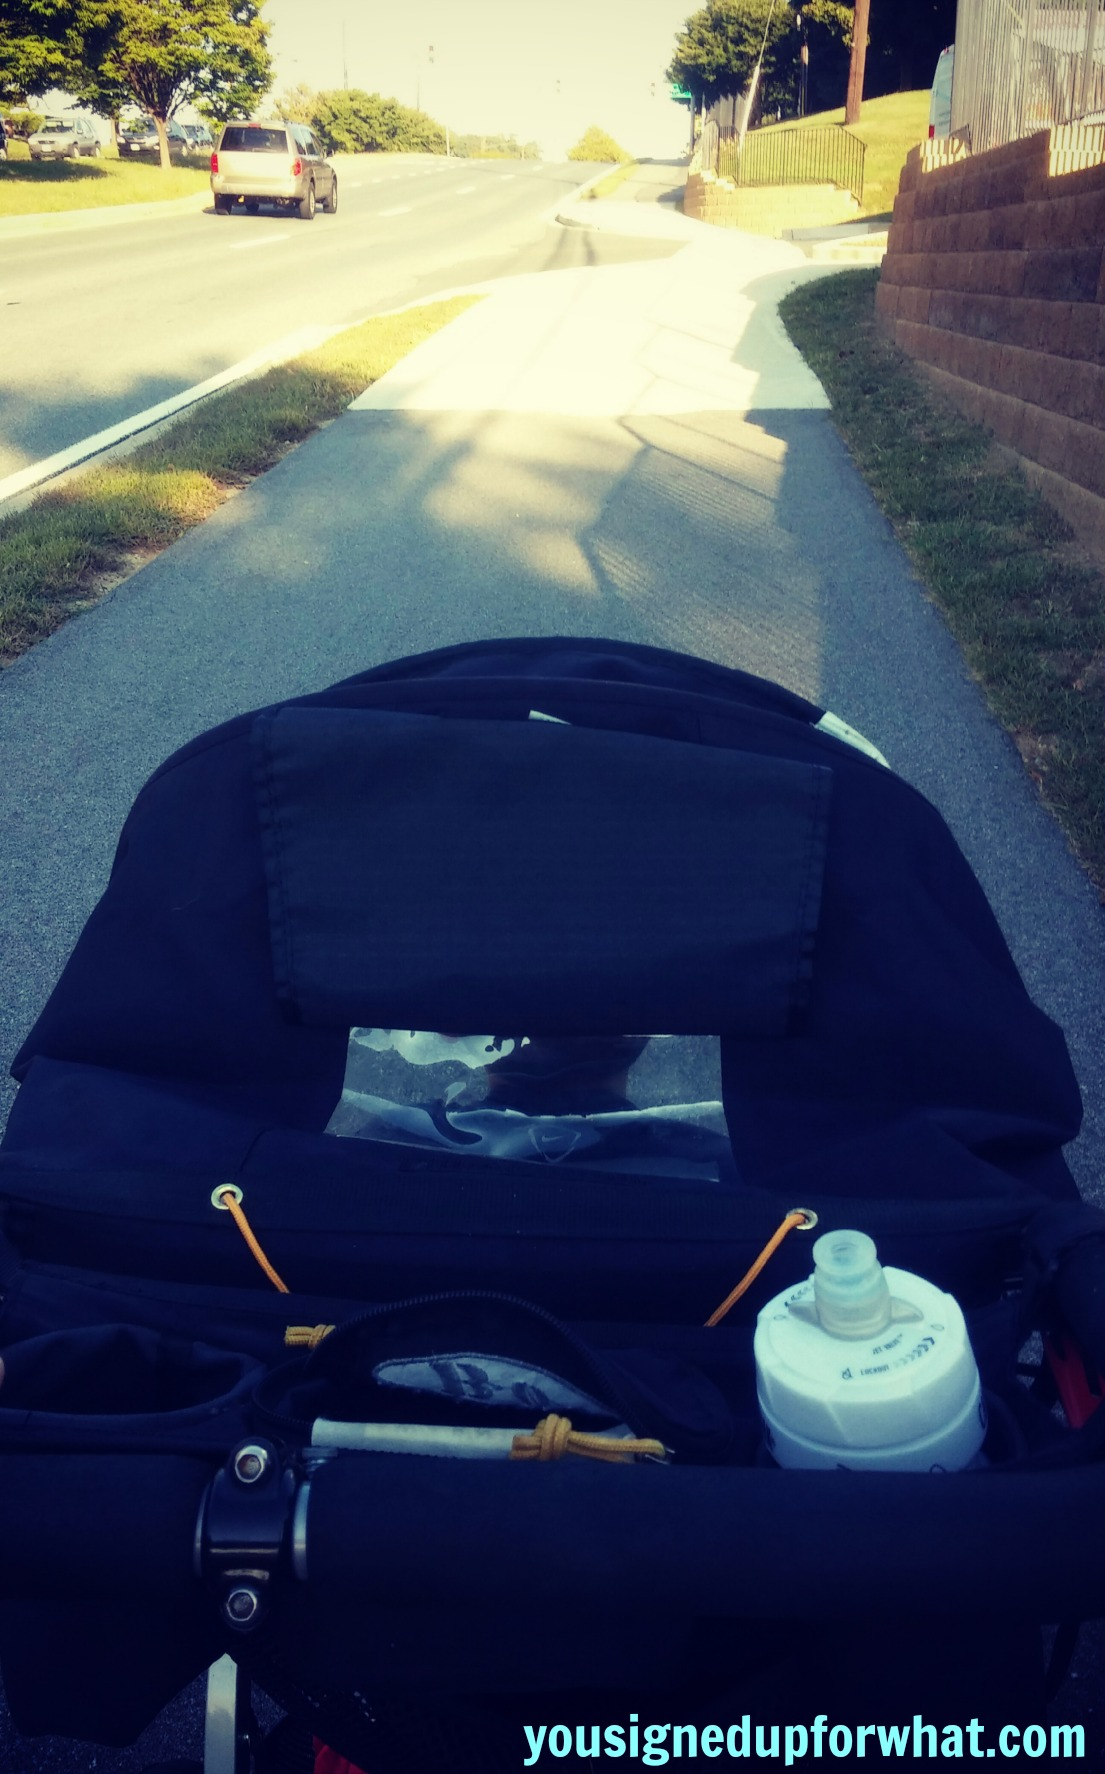 Stroller Run up hill